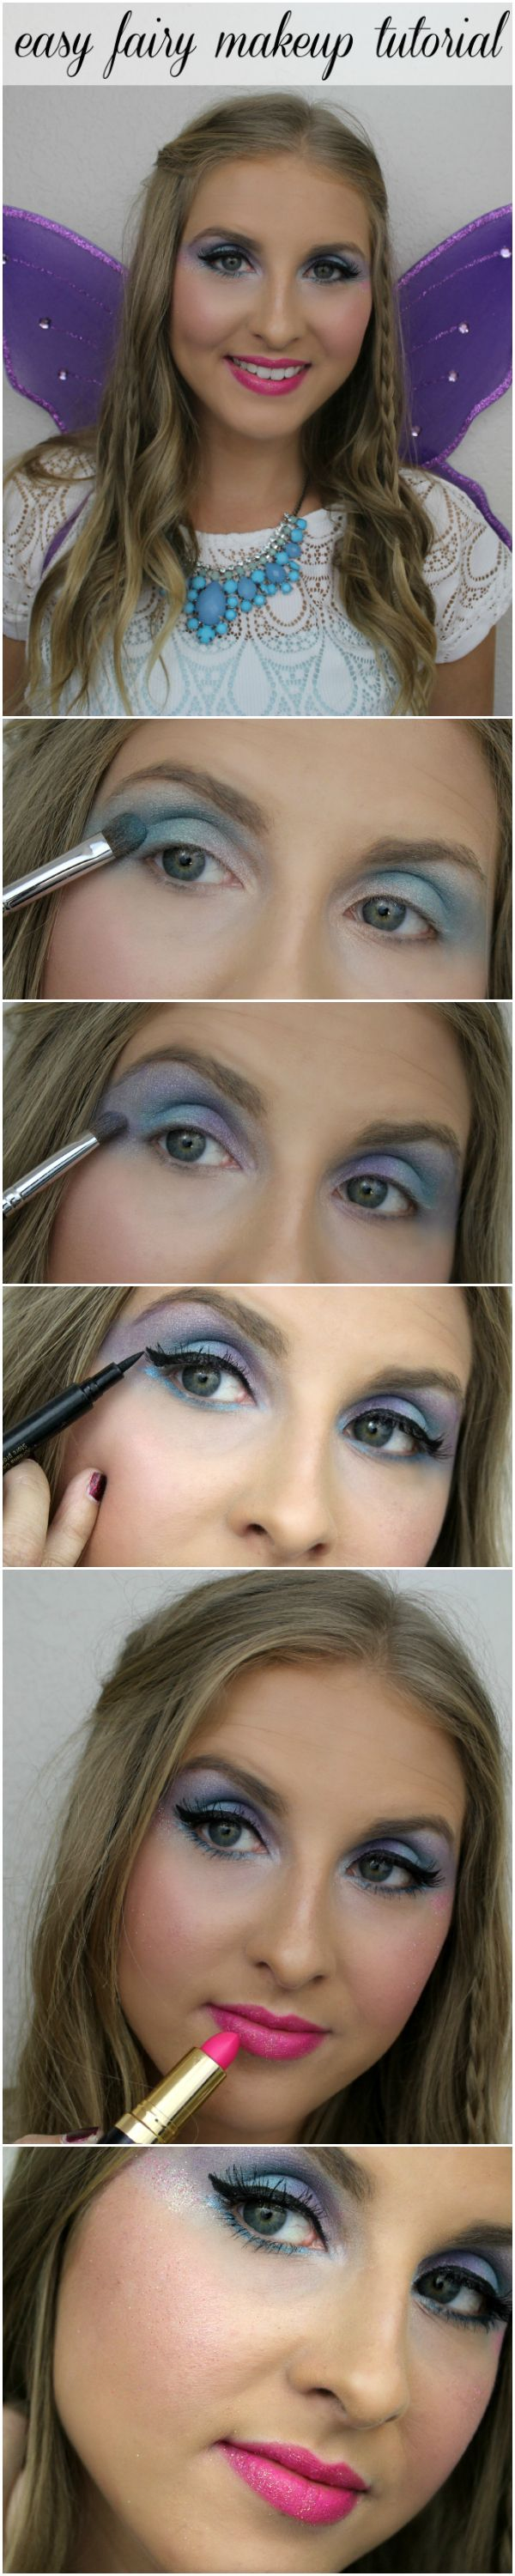 best ideas for makeup